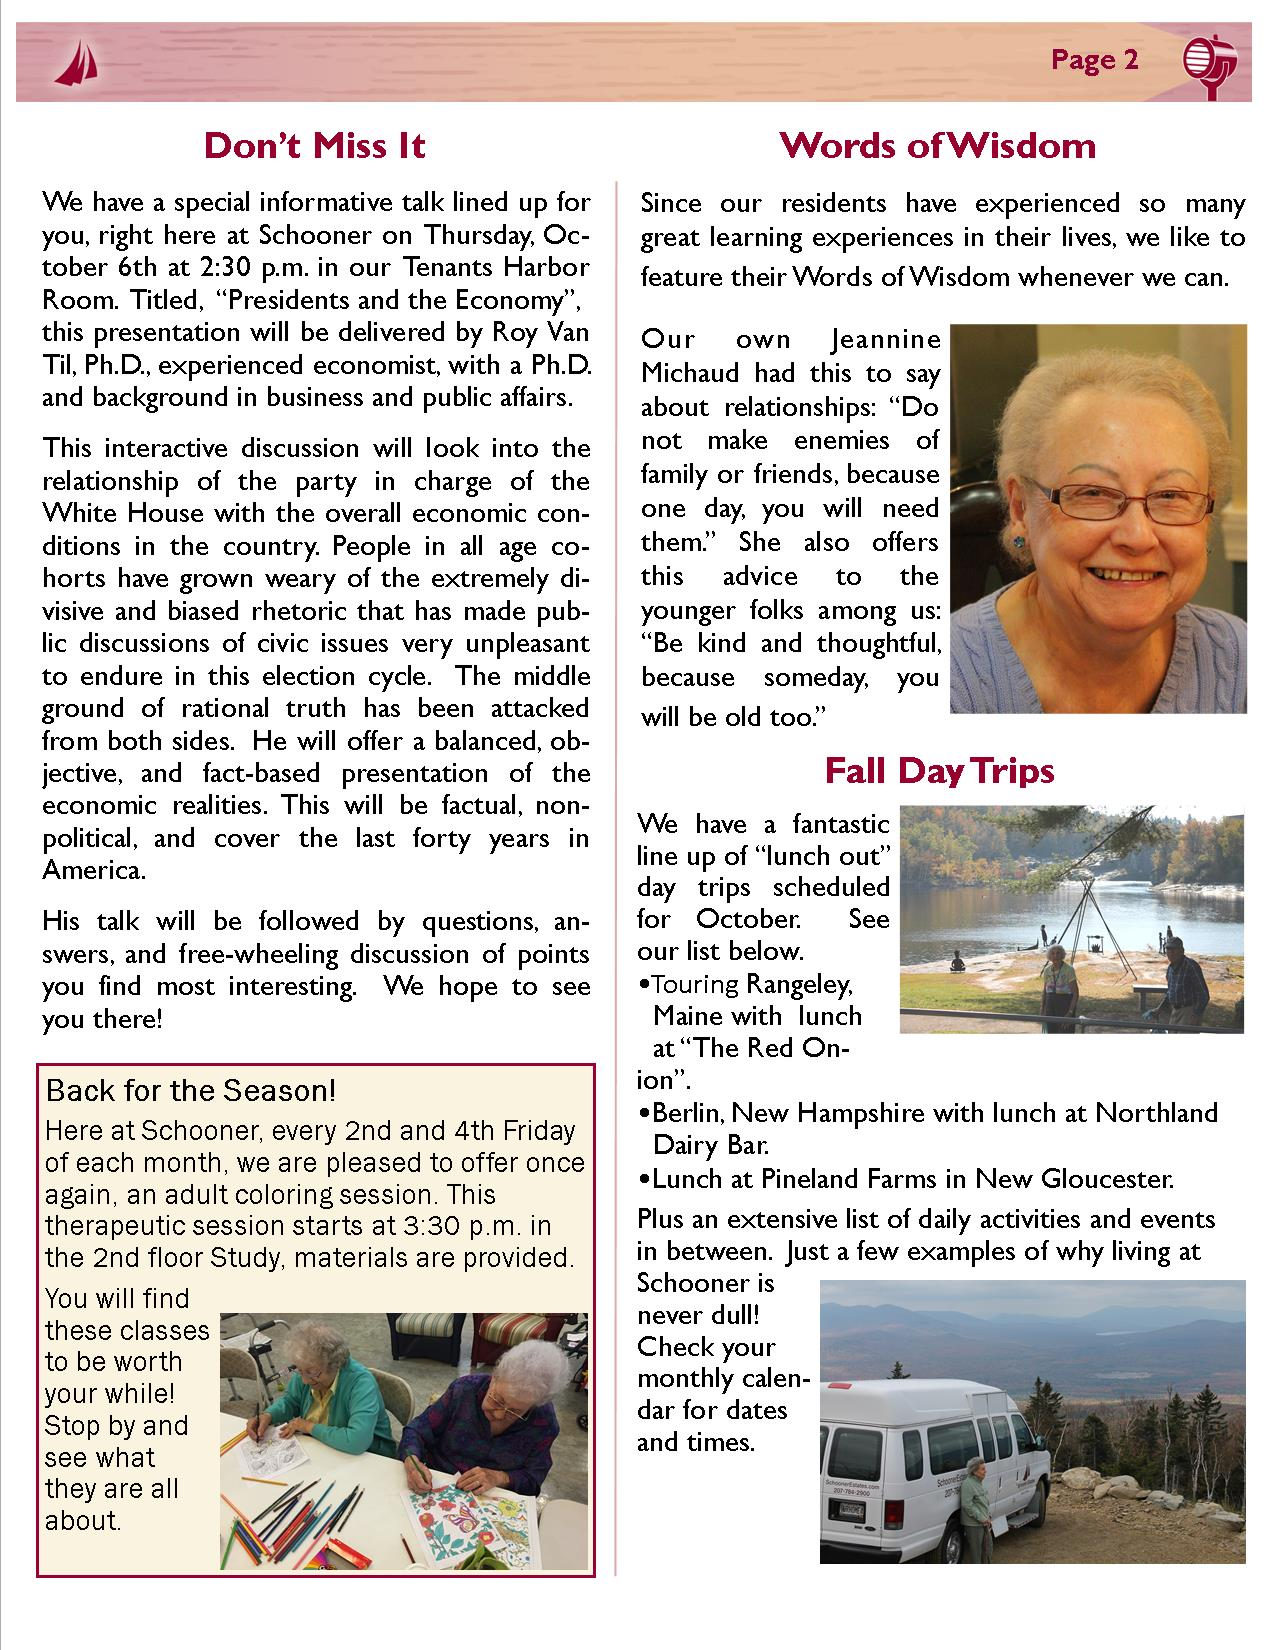 october-2015-schooner-flash-newsletter-page-2